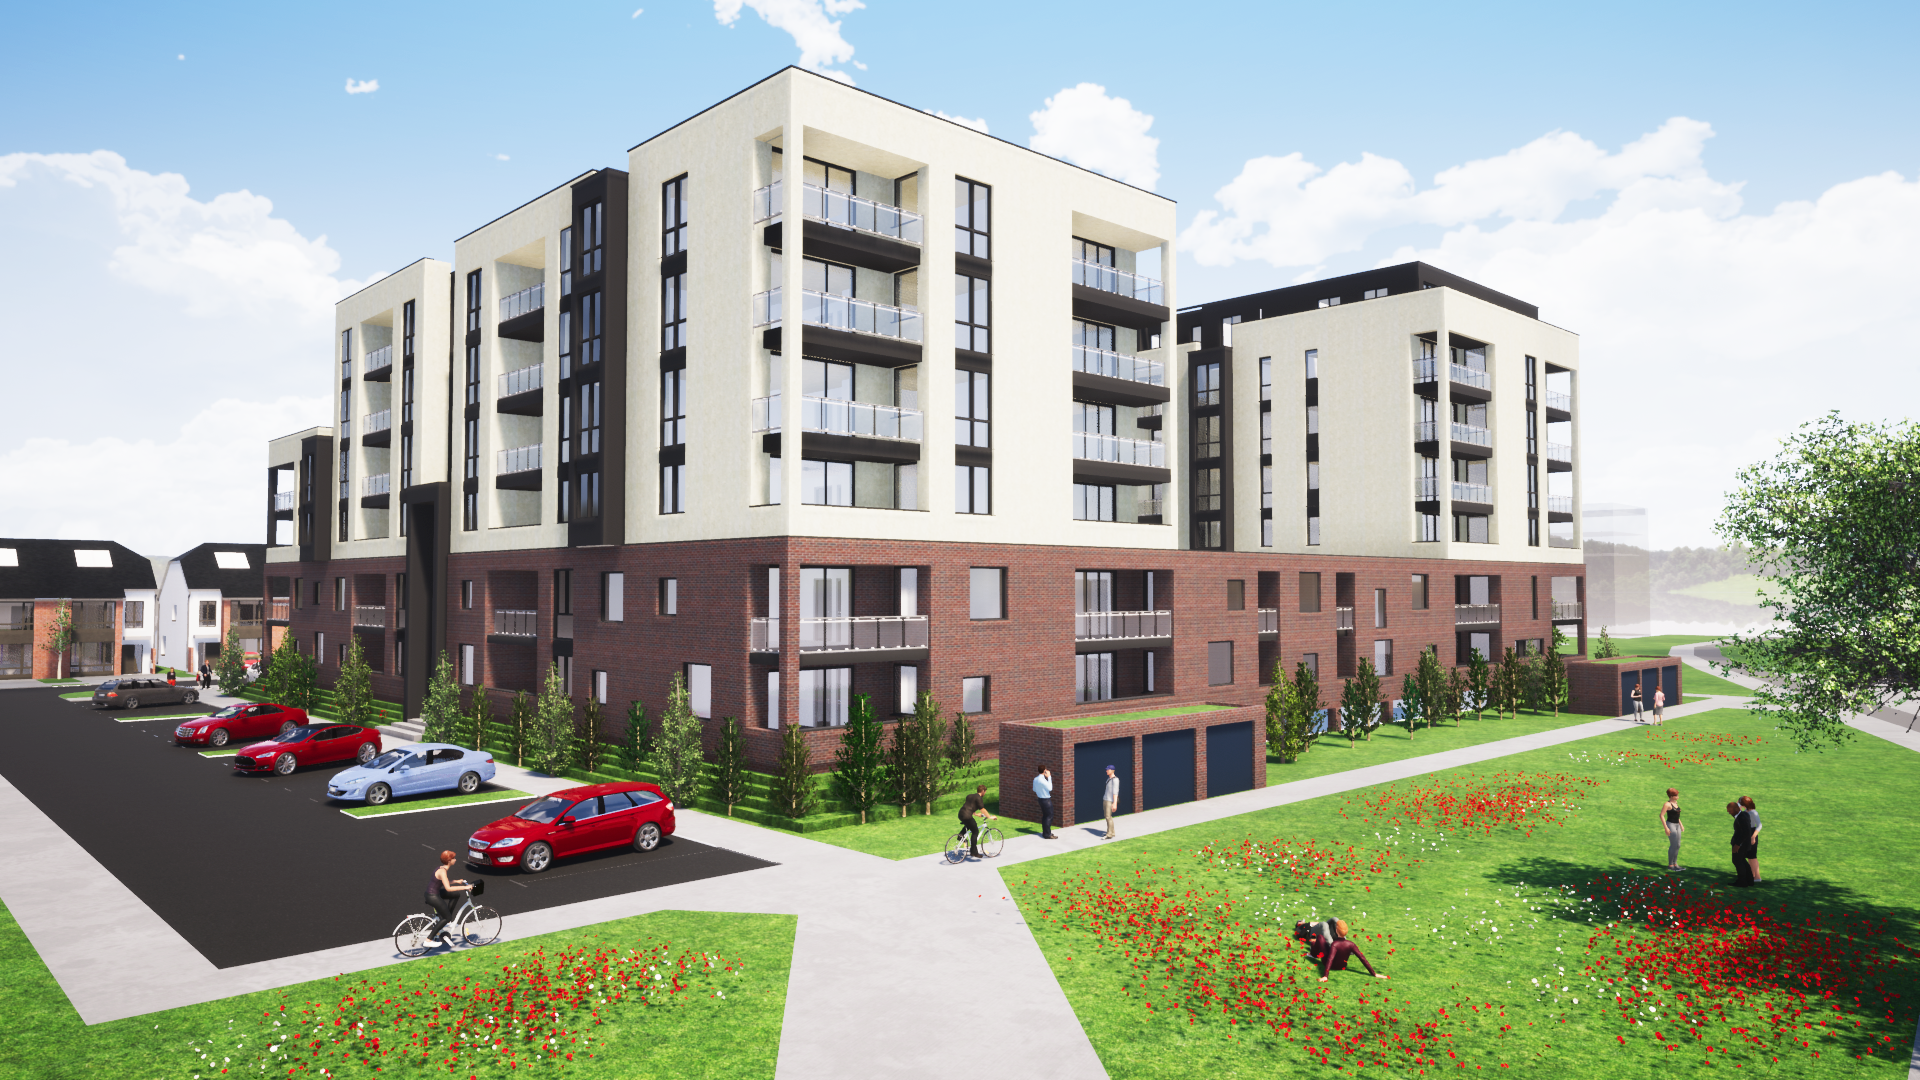 95 Apartments Marks the Start of Hansfield Station Quarters